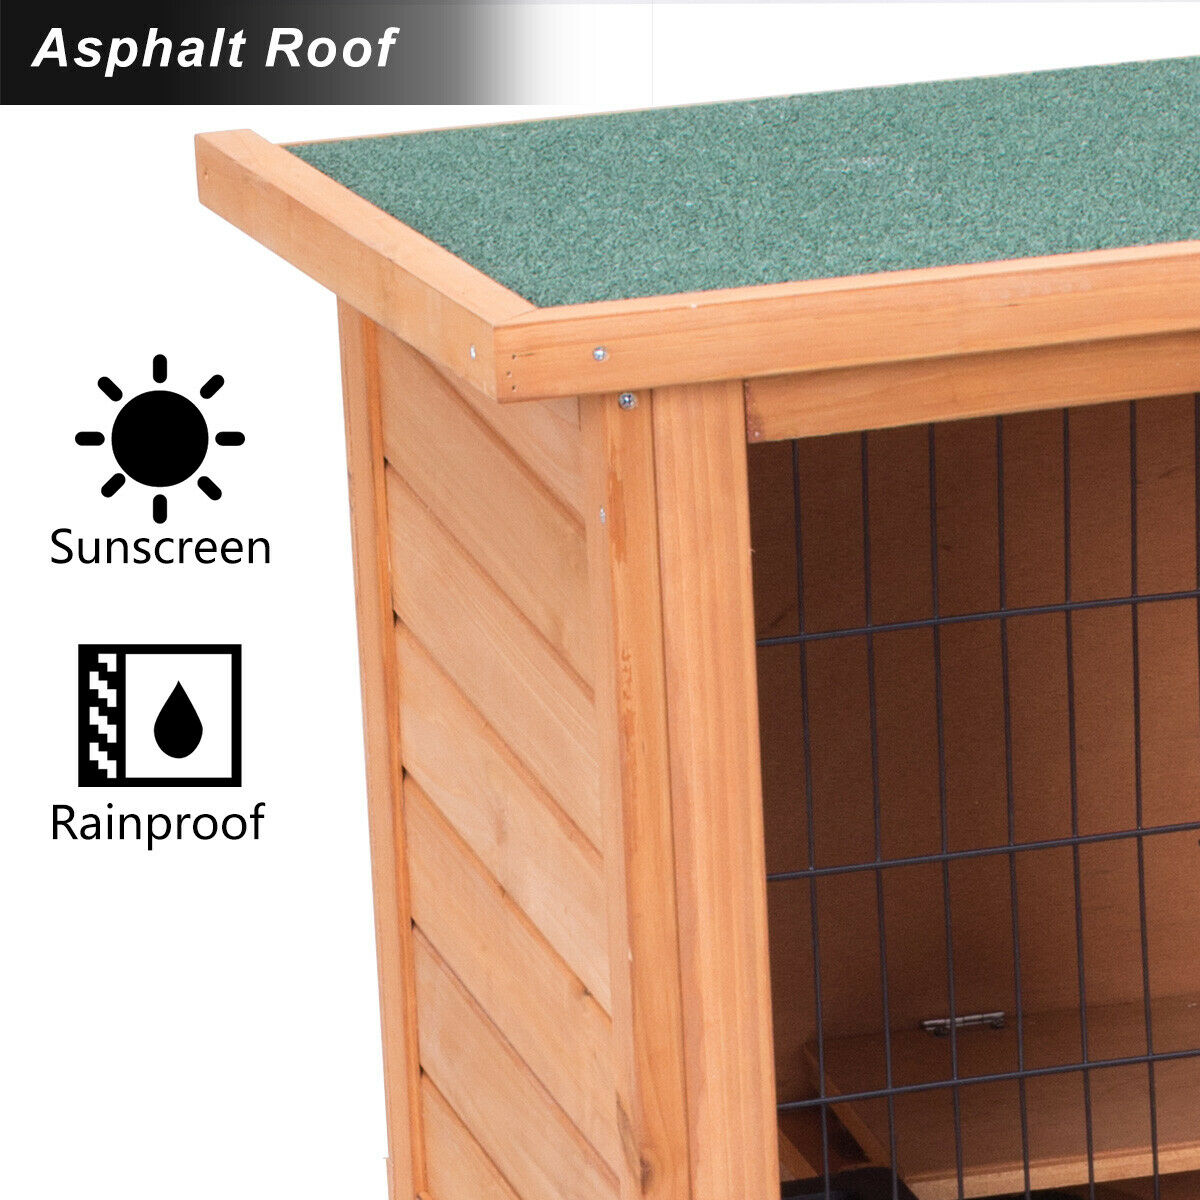 Gymax Large Chicken Coop Rabbit Hutch Garden Backyard Wood Hen House Poultry Cage - image 1 of 10